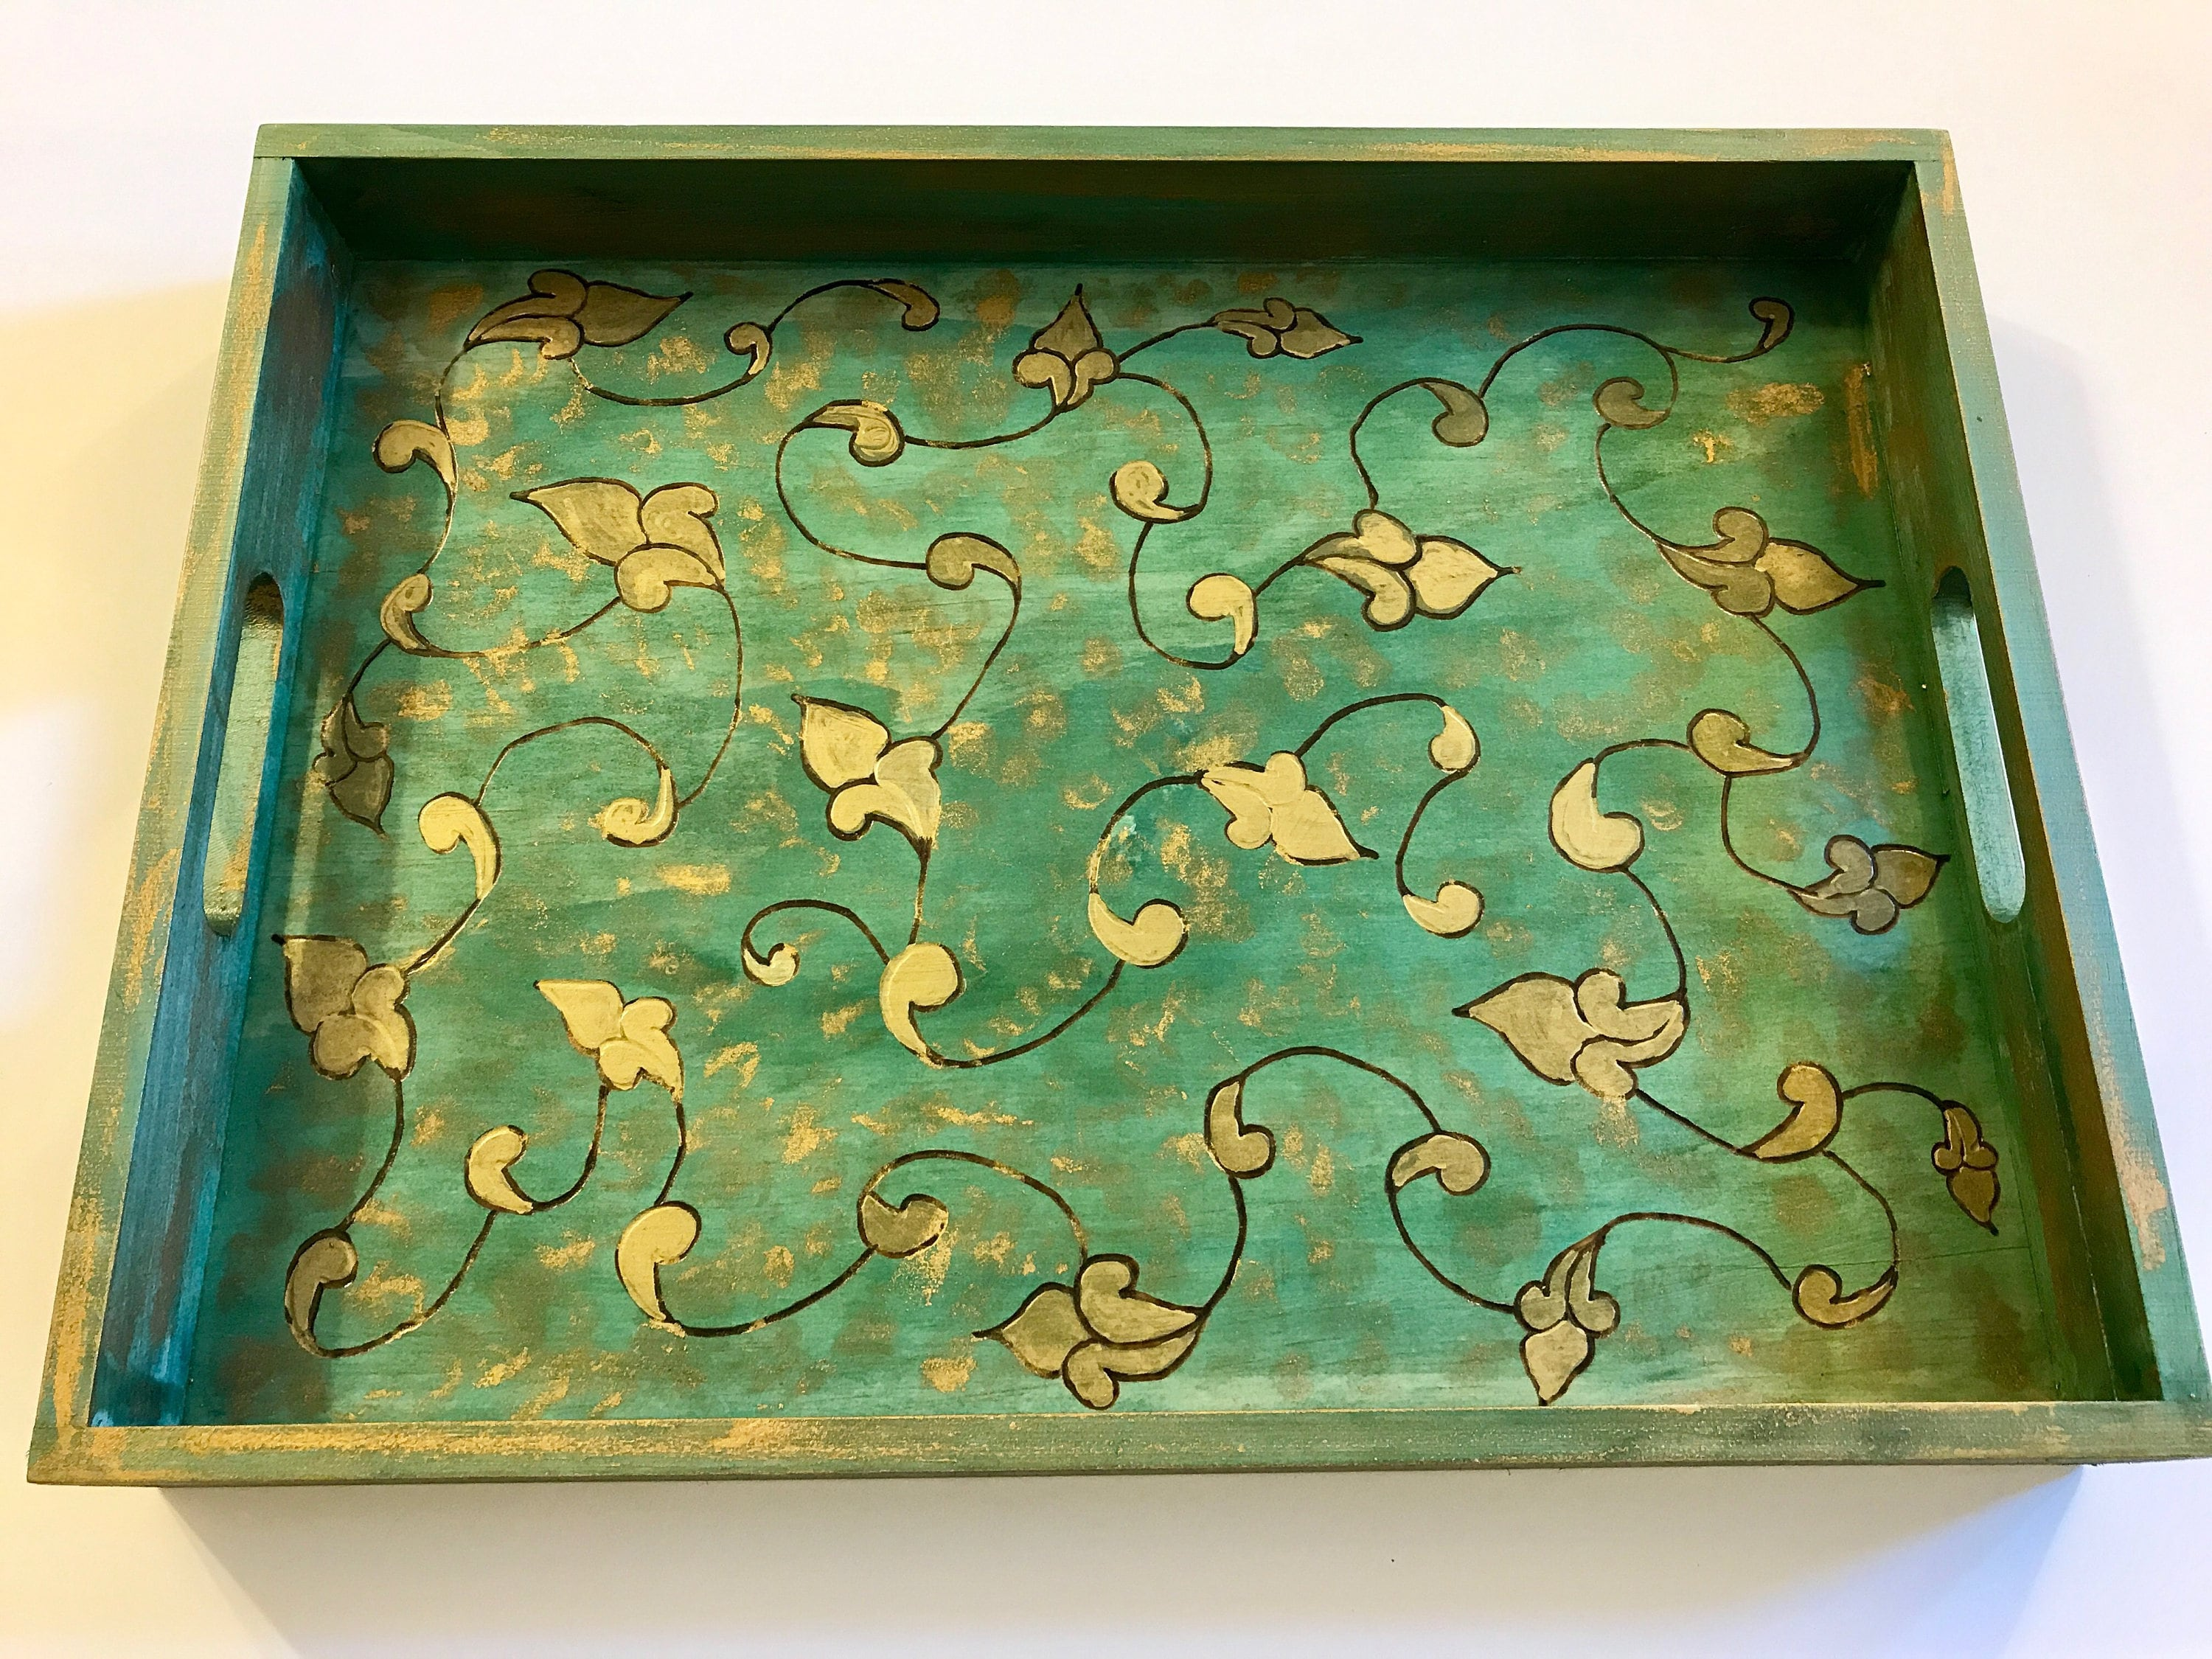 A Midsummer Night's Dream Handmade and Handcrafted Wooden Decorative Coffee  Table Tray - Ottoman Tray - Vanity Tray - Elegant Home Decor